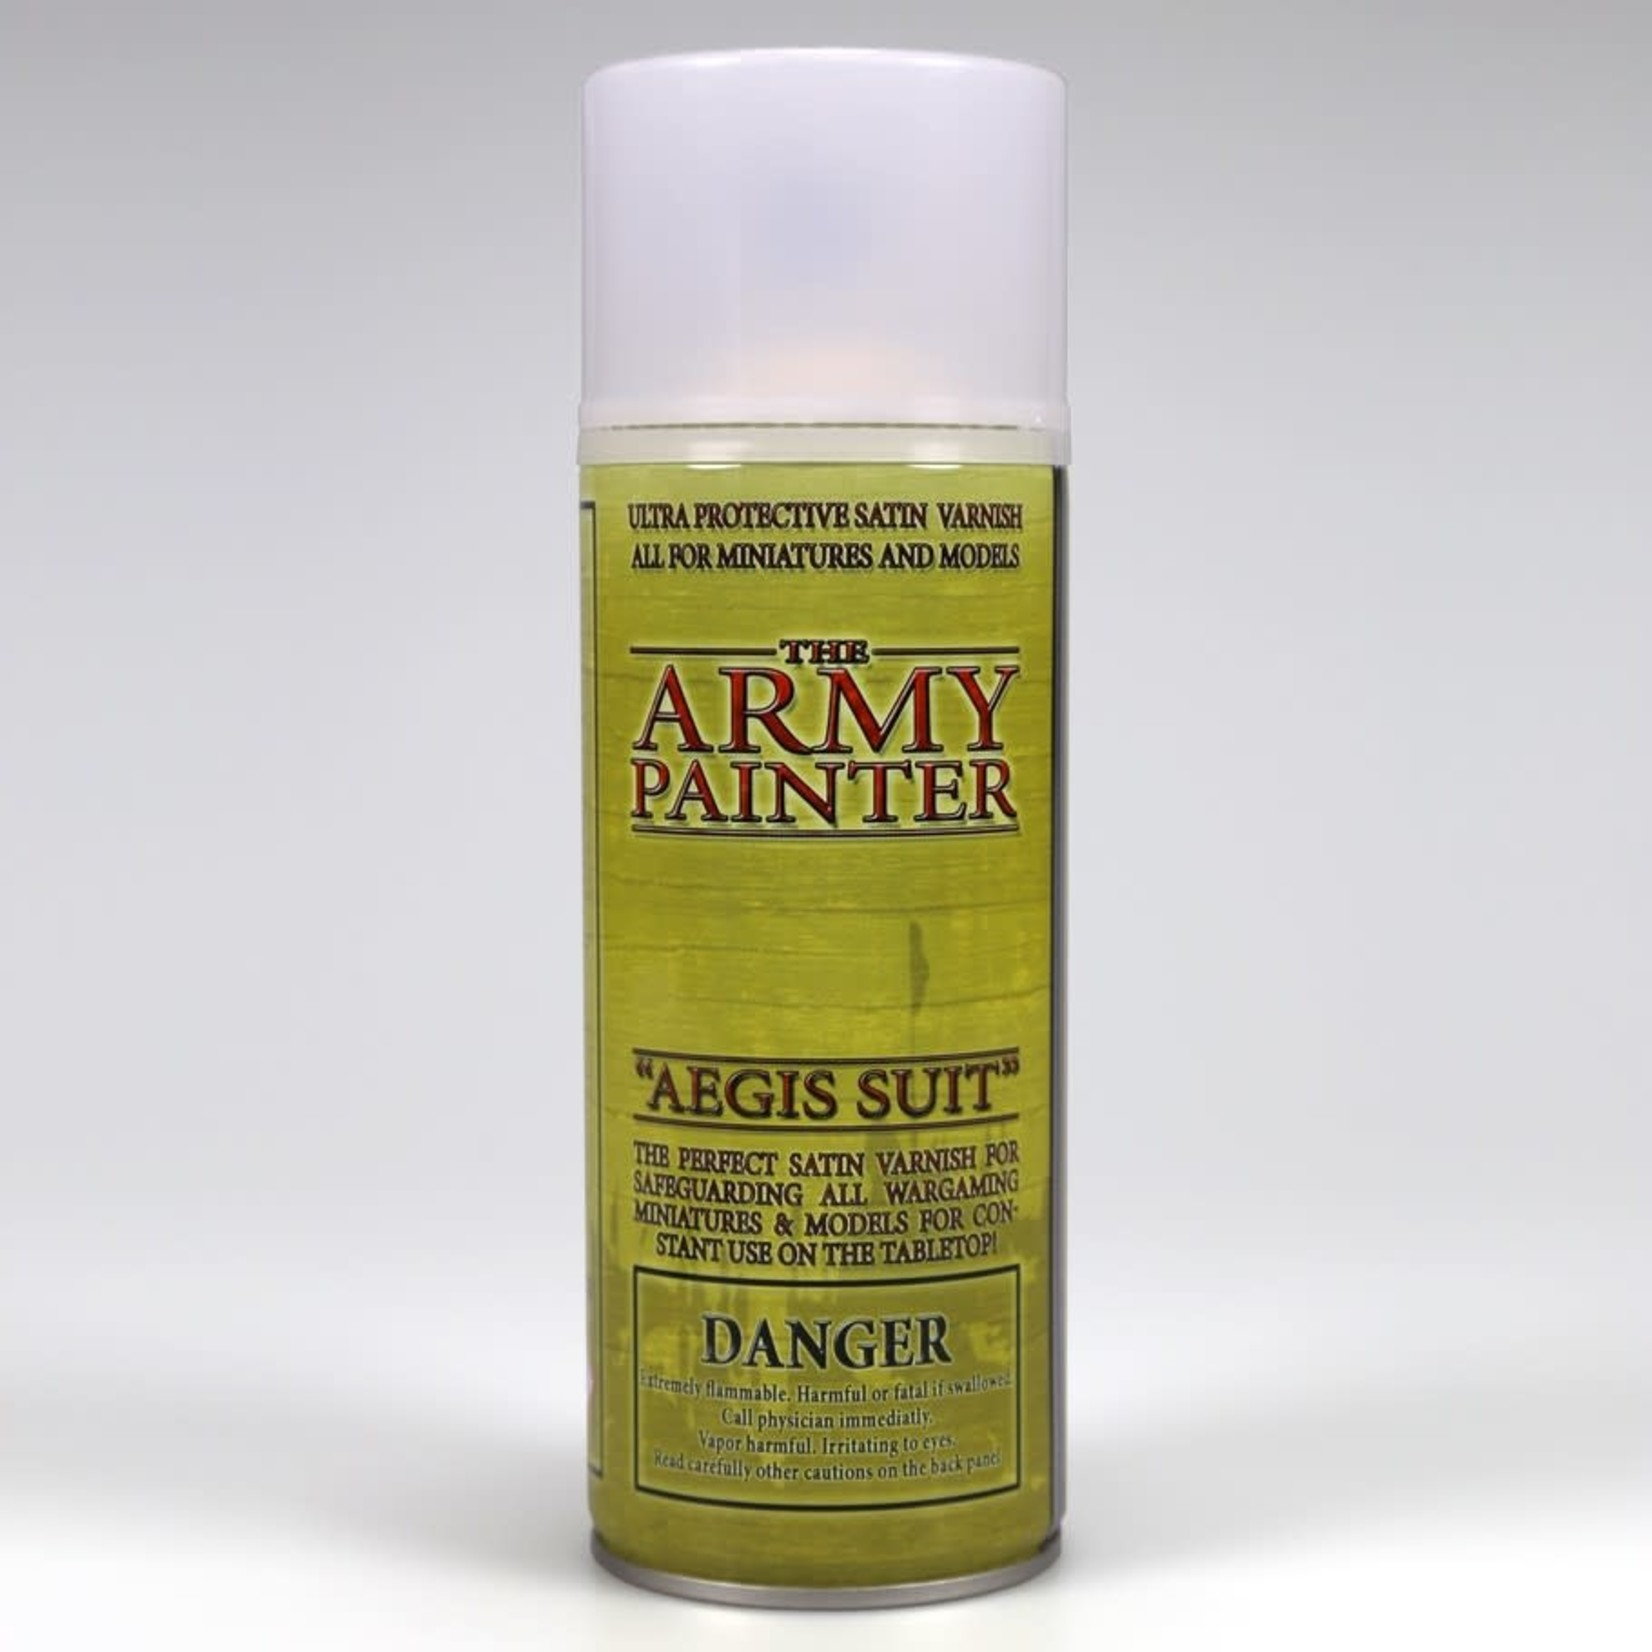 The Army Painter The Army Painter: Aegis Suit Satin Varnish